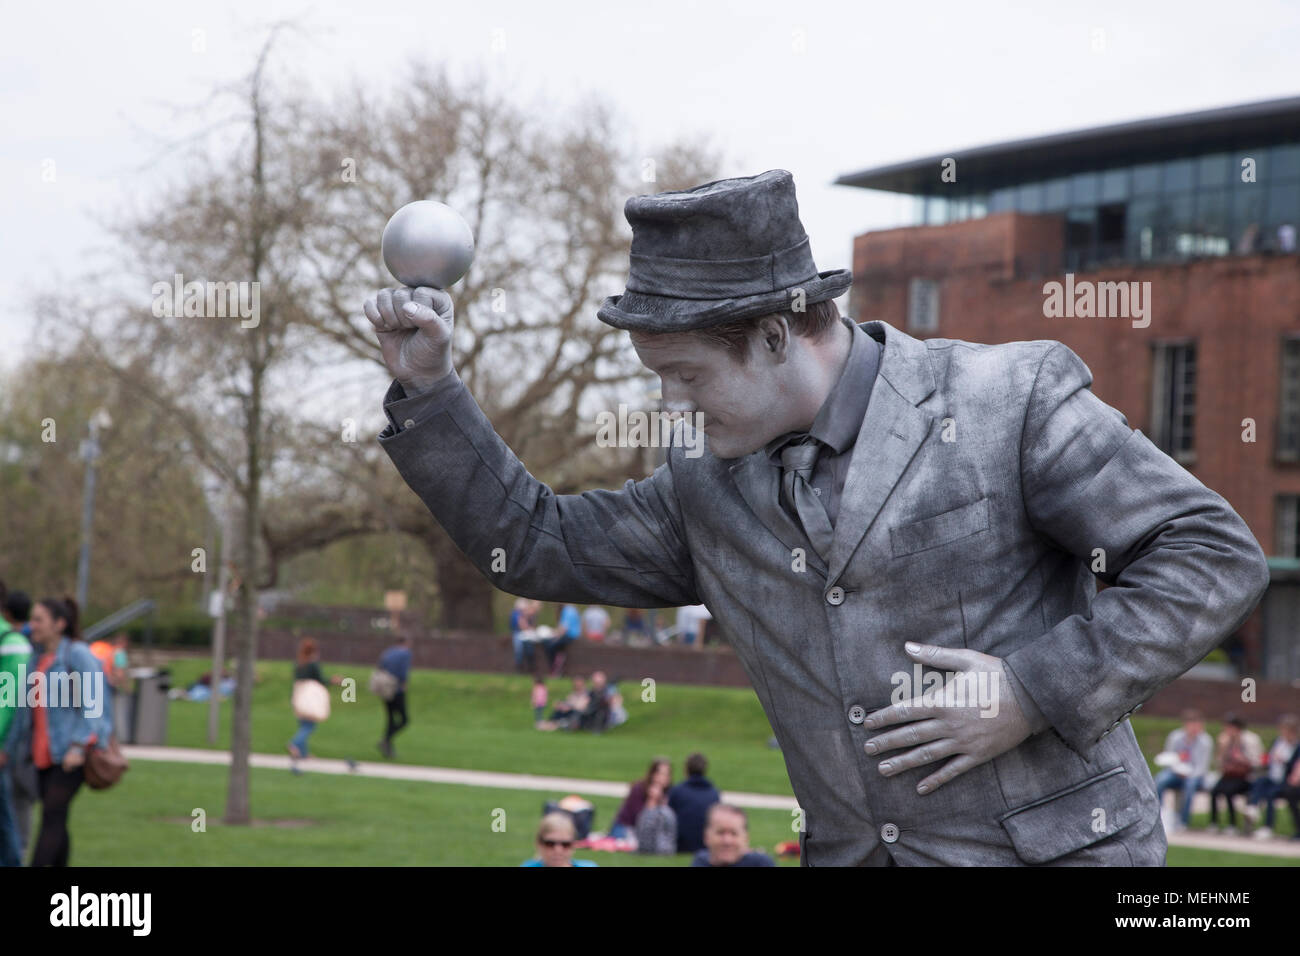 Stratford upon Avon, Warwickshire, 22nd April 2018. The Silver Hand, British artist no S04. The final day of the U.K's First Living Statue Competition in Bancroft gardens which has been held over 3 days, as part of Shakespeare 454th Birthday Celebrations a unique event showcasing some of the best artists from around the world, including World and National Champions. Credit: Keith J Smith./Alamy Live News - Stock Image